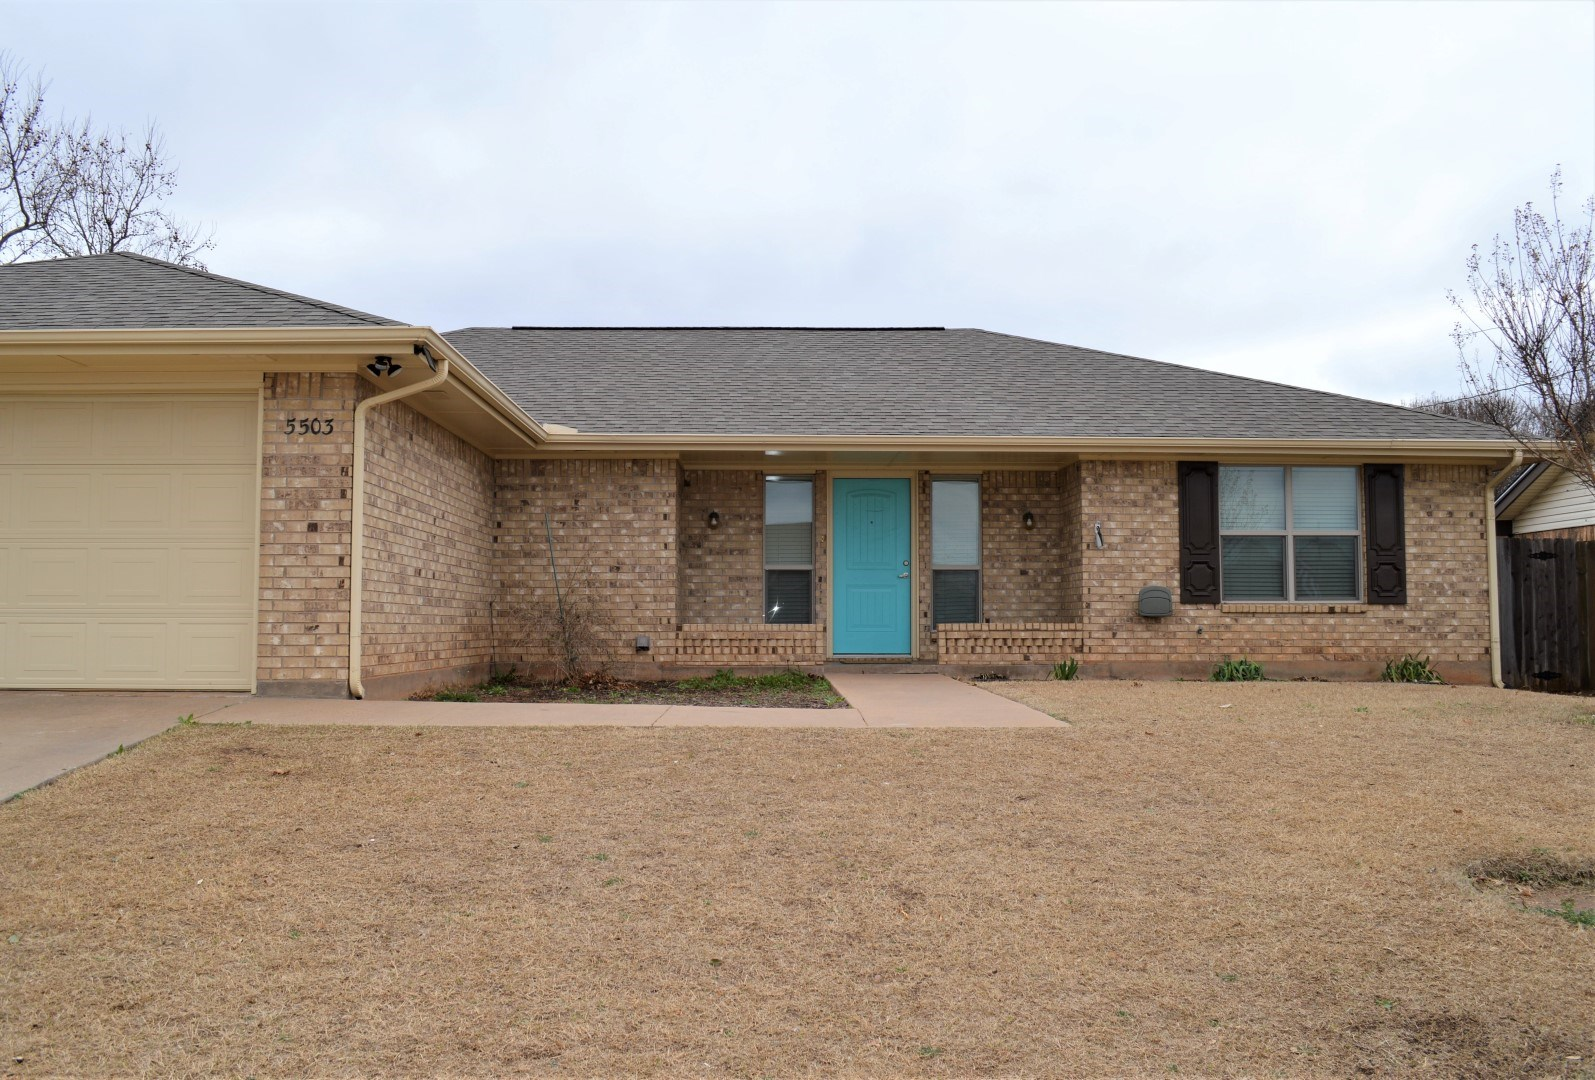 House for Lease House for Lease Wichita Falls Wichita County